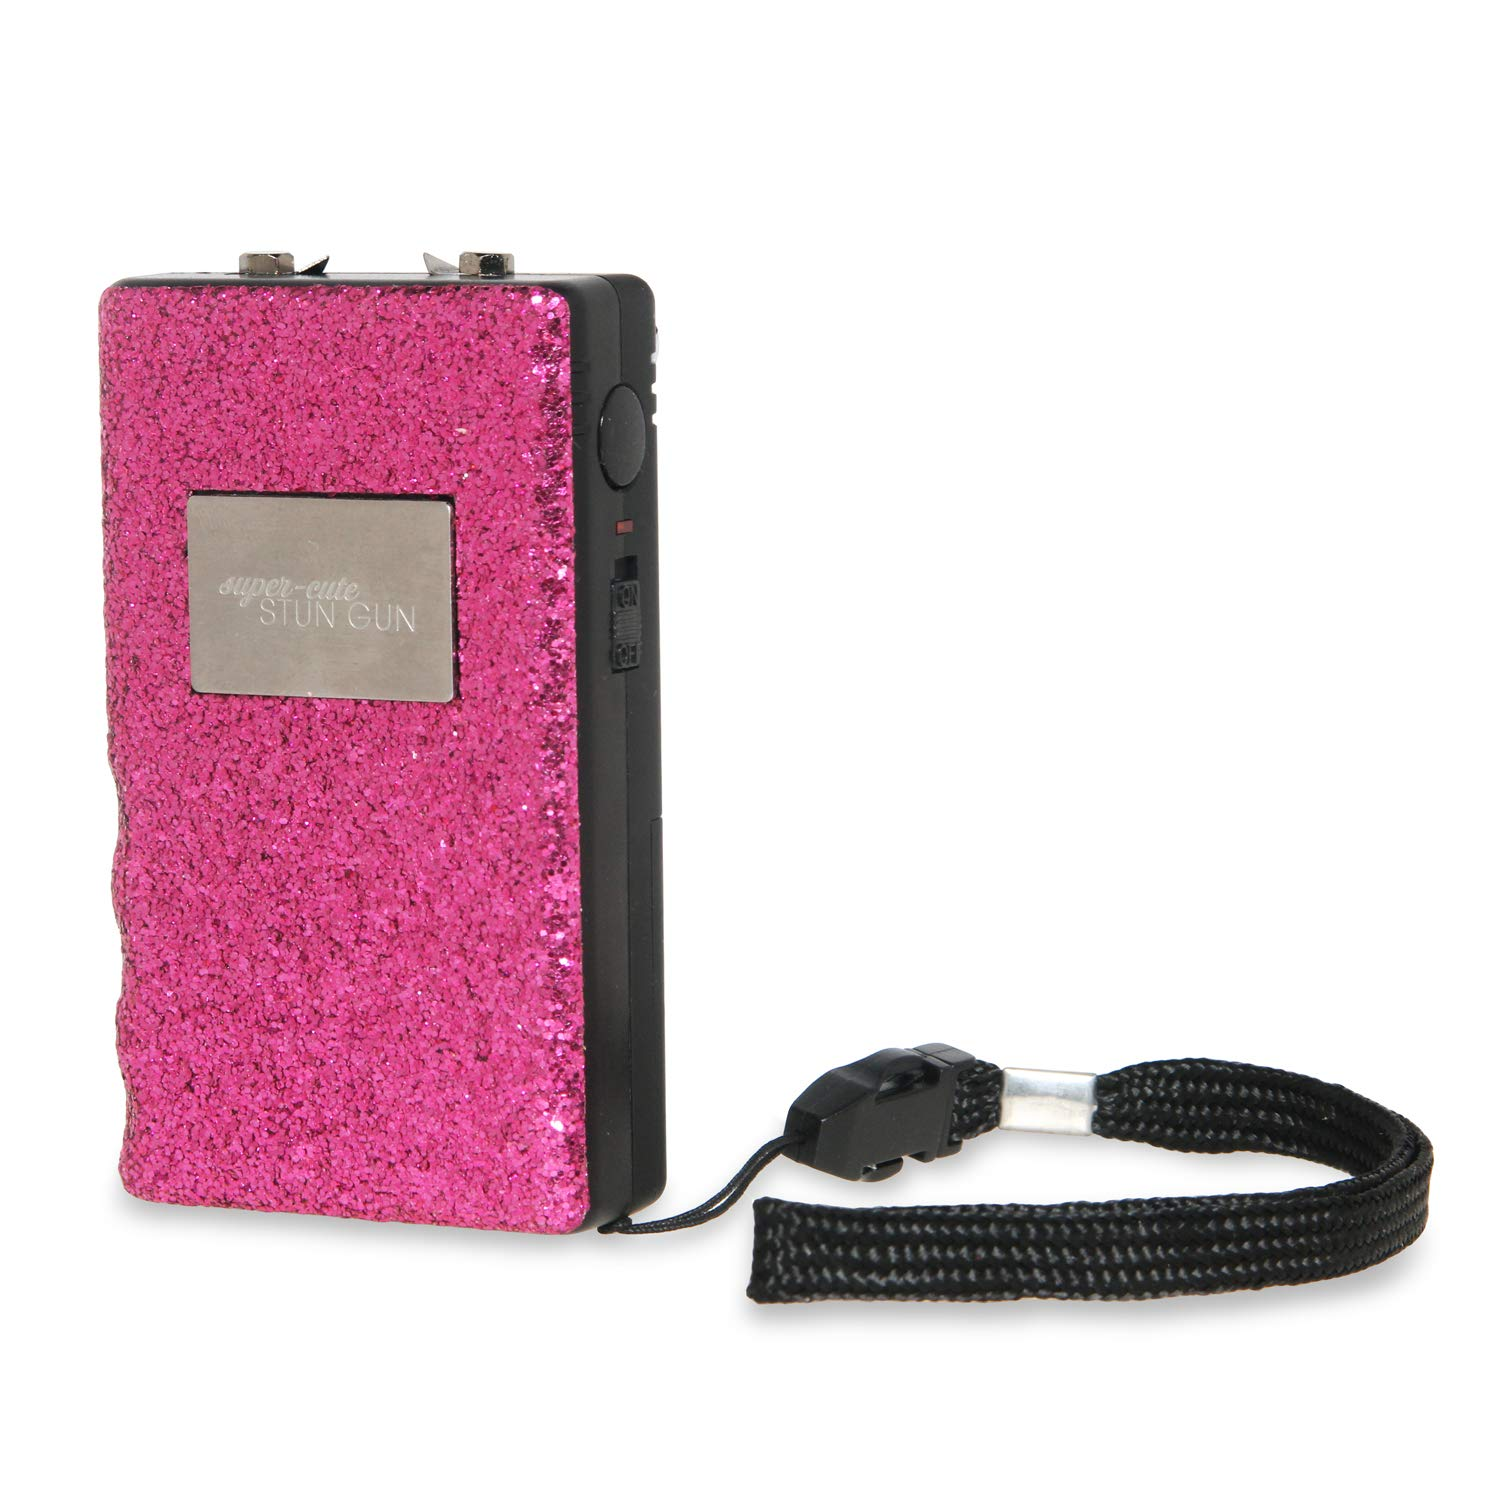 Super-Cute Pink Stun Gun for Women - Extreme Pain and Powerful Voltage Stun Gun - Reliable Woman's Personal Protection & Self Defense by super-cute pepper spray